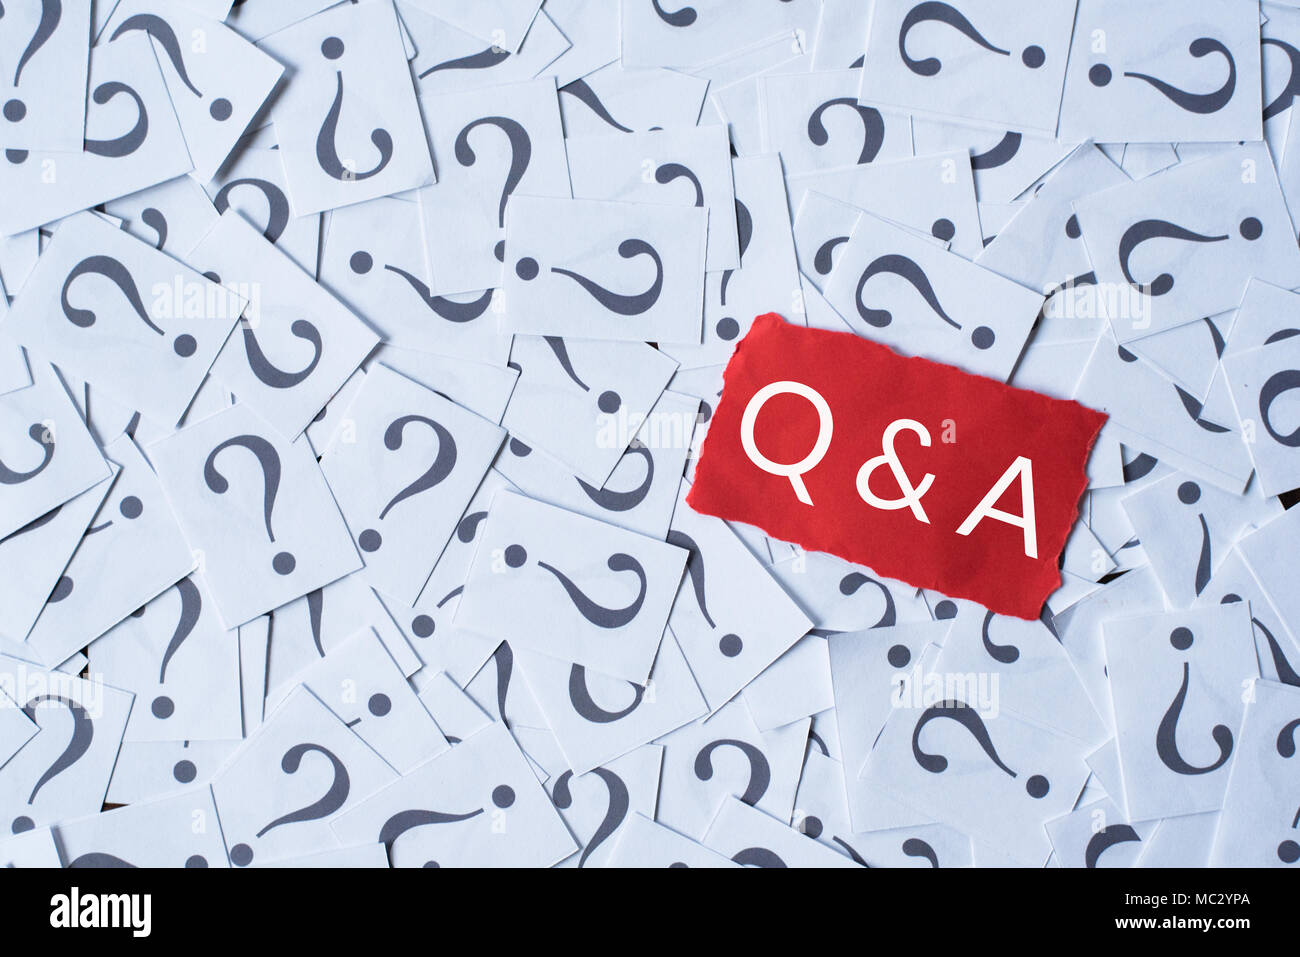 question mark on white paper and Q&A on red paper. questions and answer concept - Stock Image